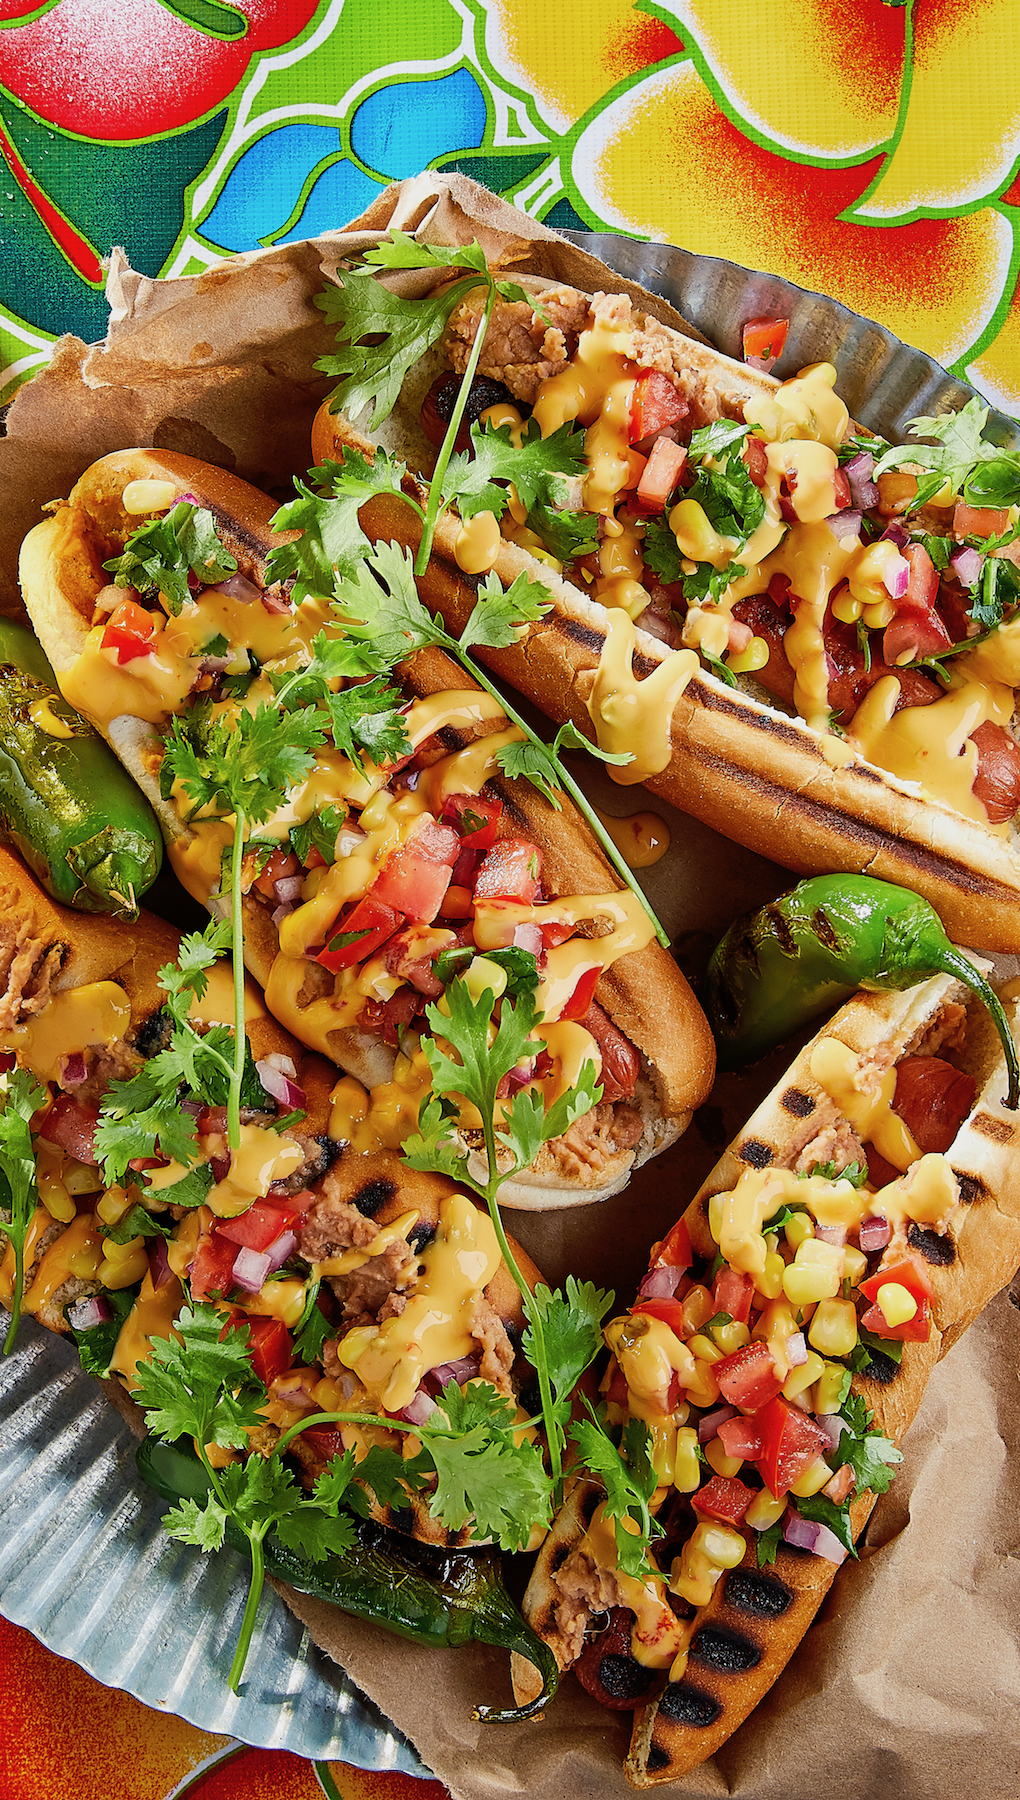 Mexican Style Hot Dogs Hot Dog Recipes Meals For The Week Week Meal Plan